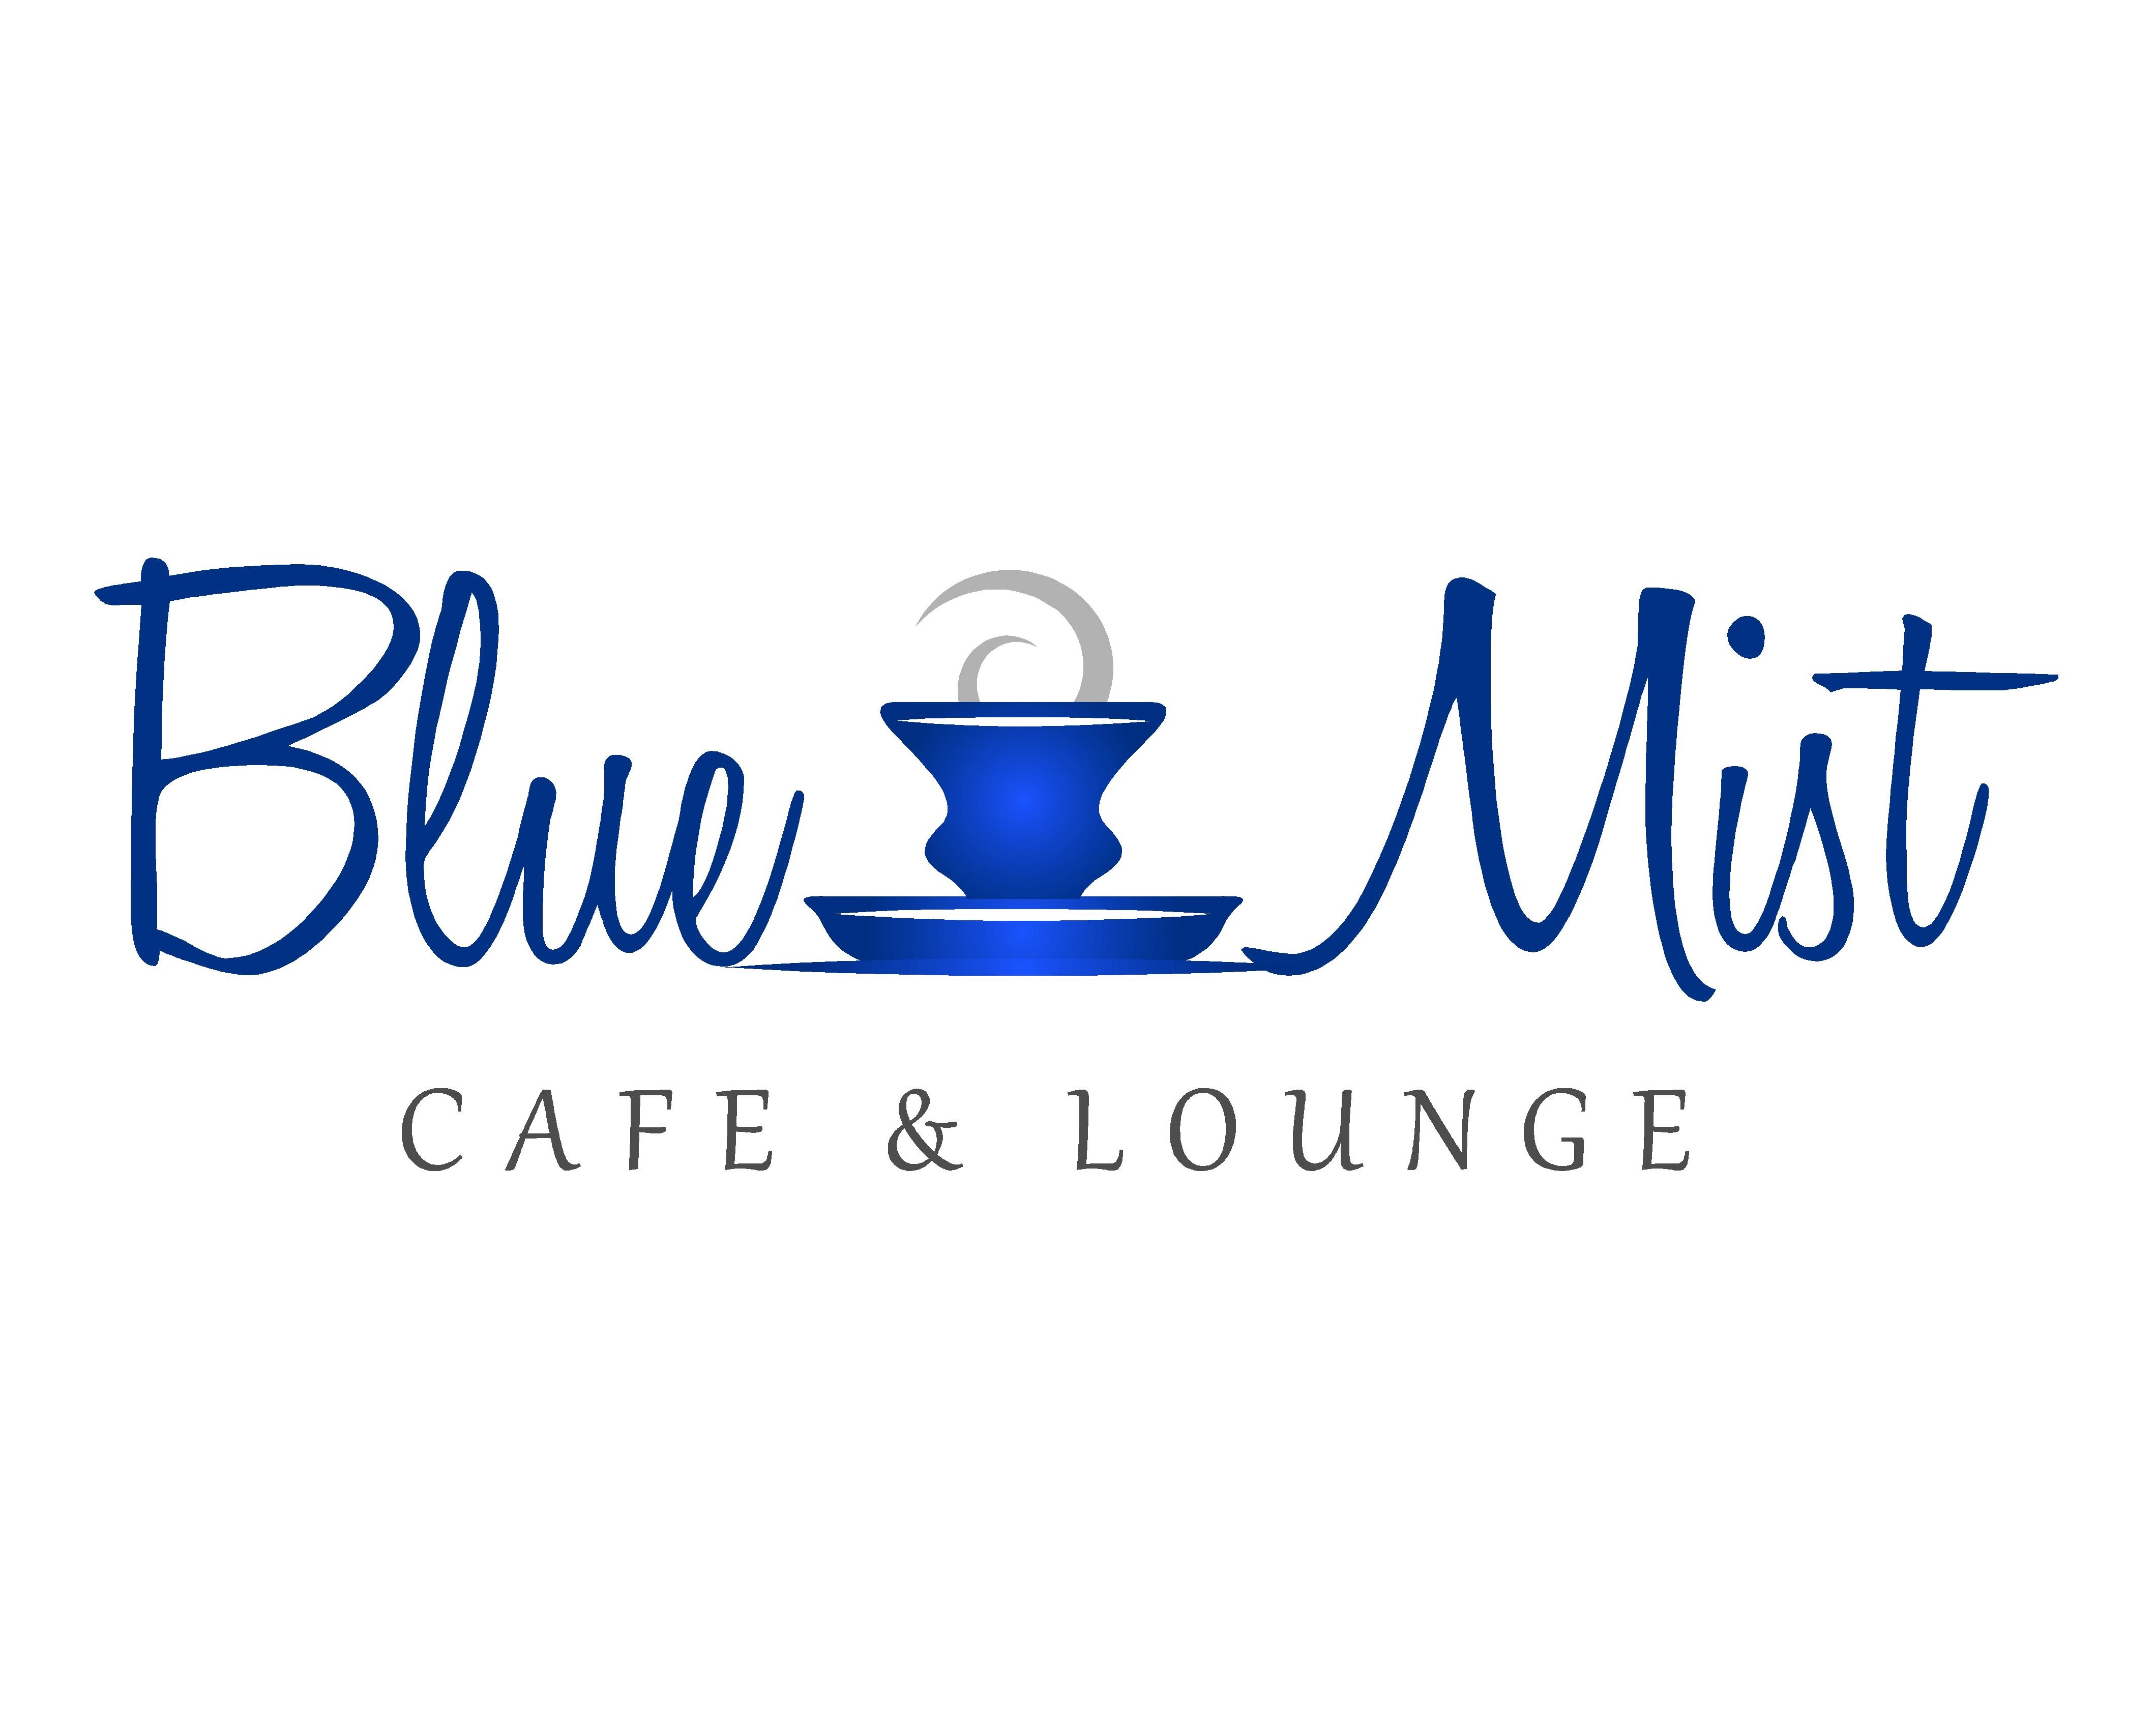 Blue Lounge Mysite